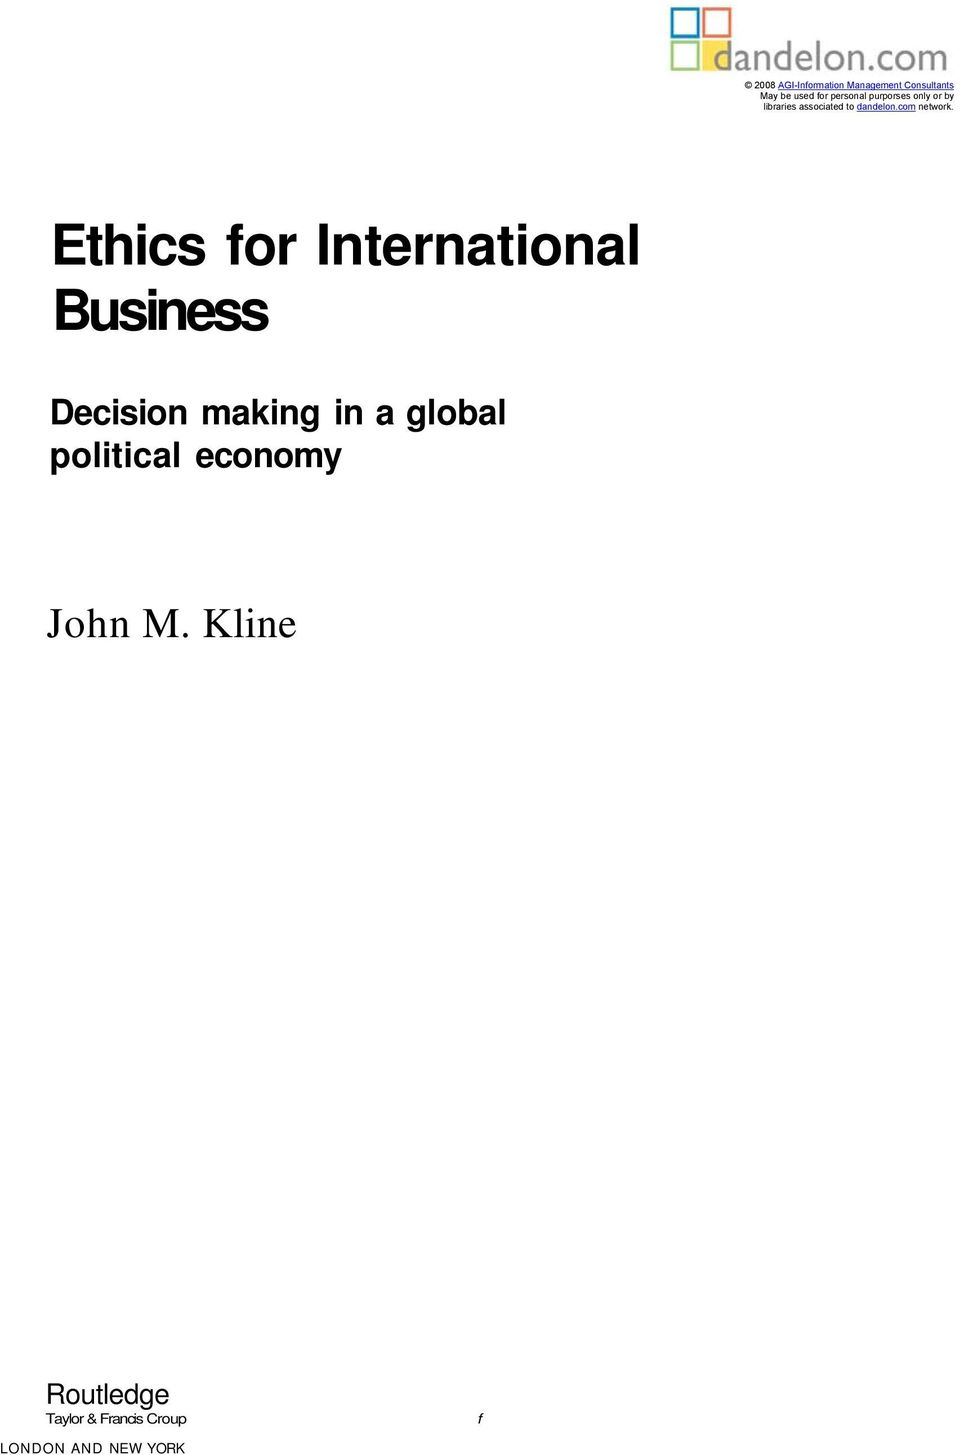 Ethics for International Business: Decision-Making in a Global Political Economy